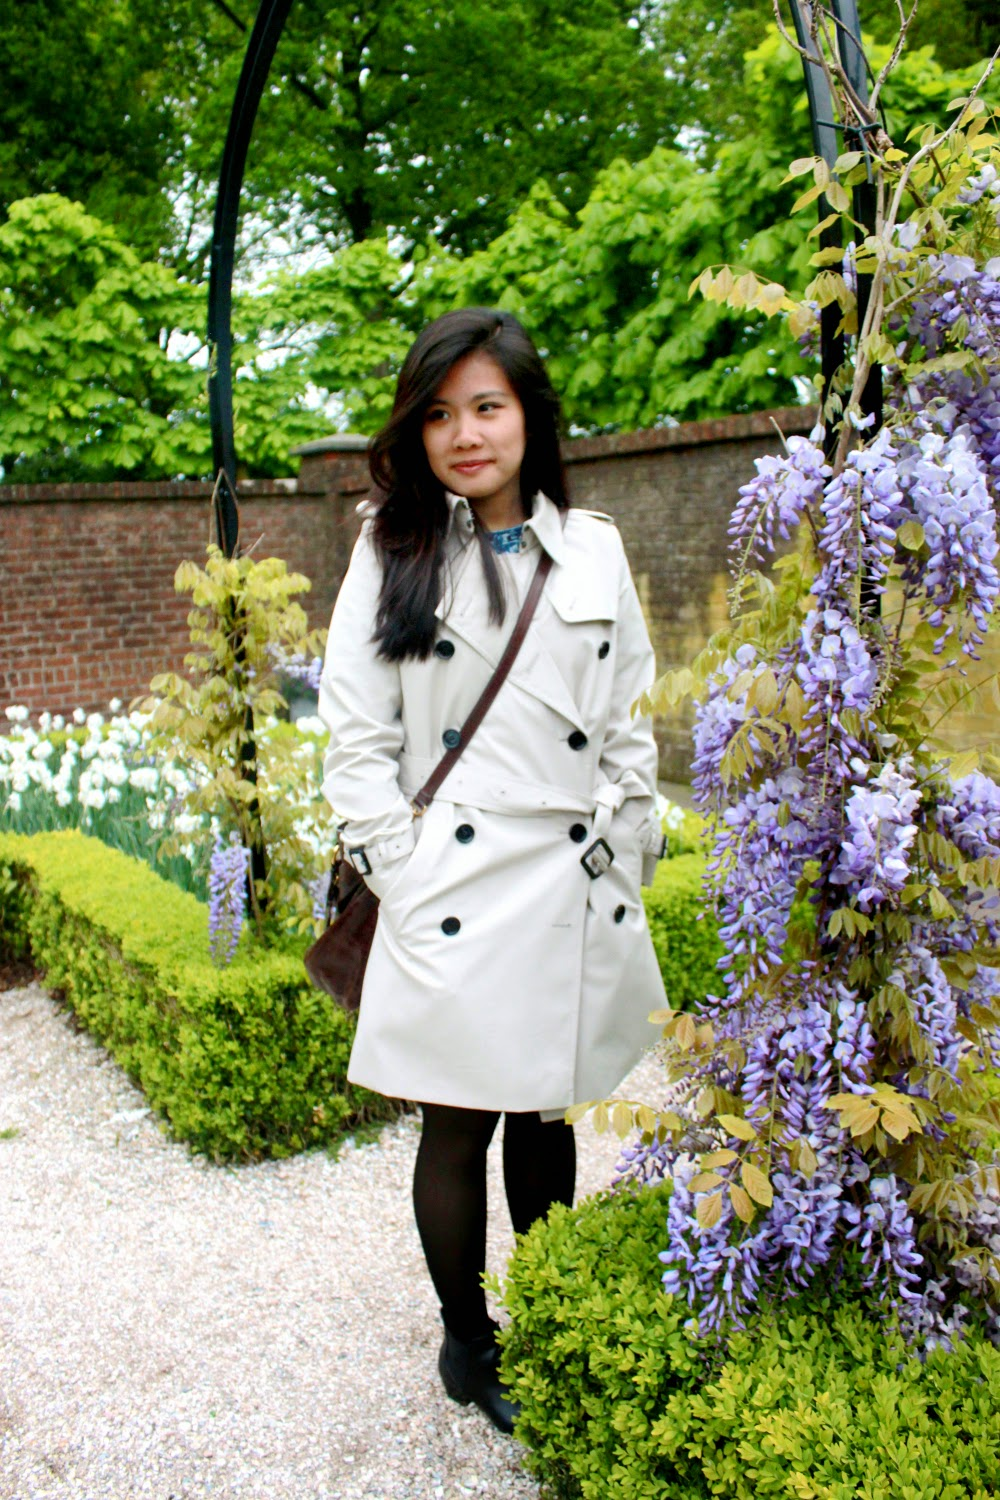 keukenhof, netherlands, photo diary, tulips, lookbook, photography, singapore, blogger